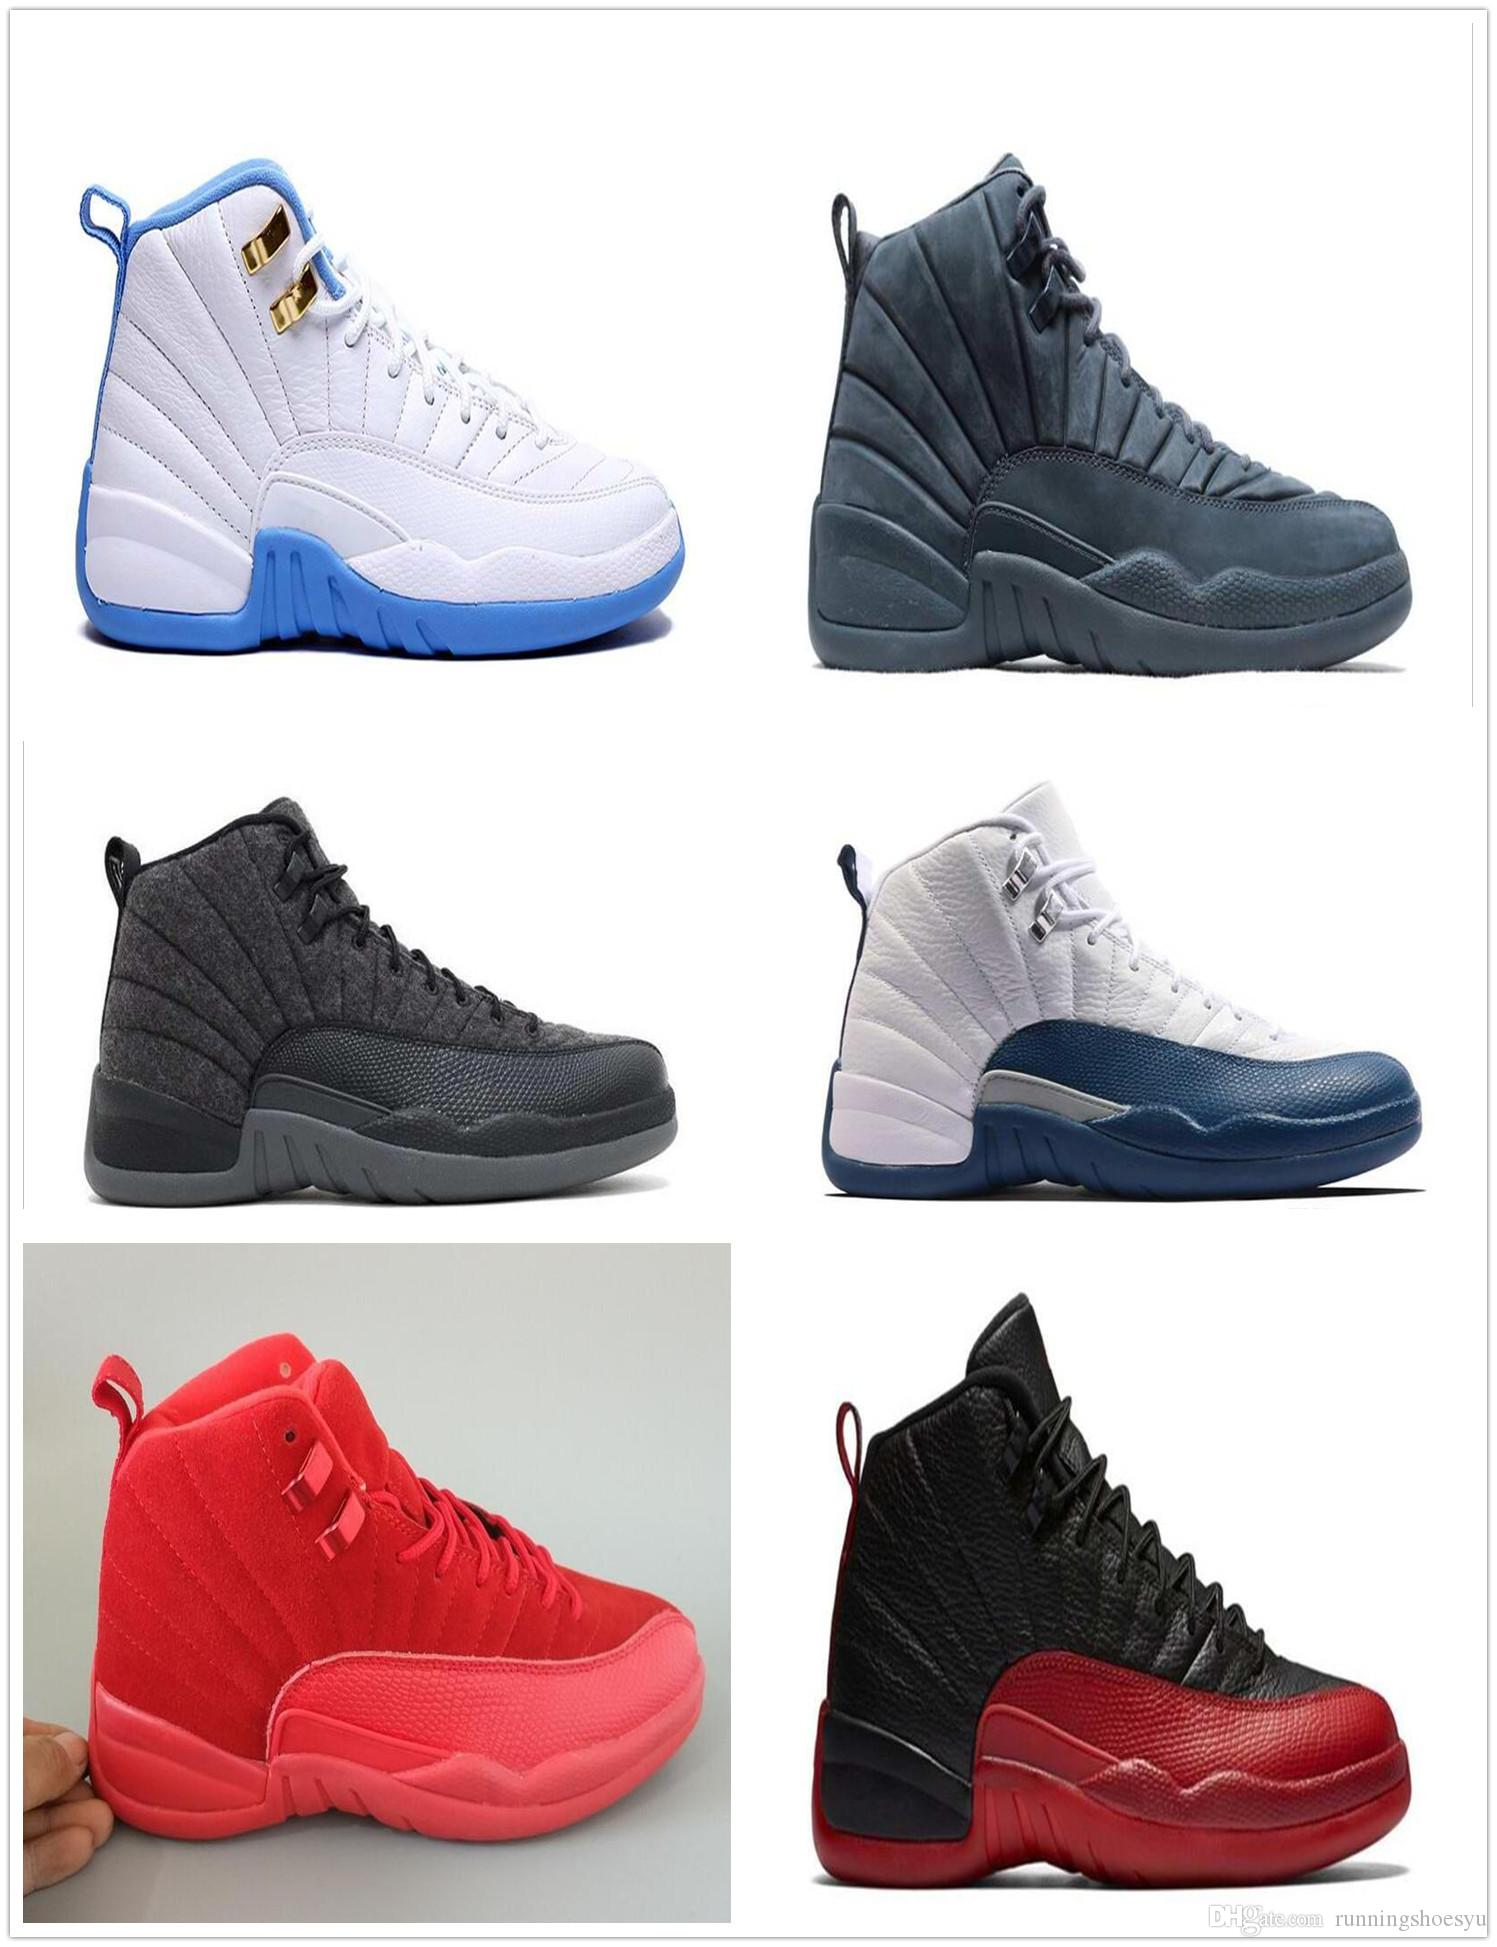 2017 man 12 high quality Basketball Shoes for mens, taxi playoffs Gamma Blue black sport 12s Sneakers shoe